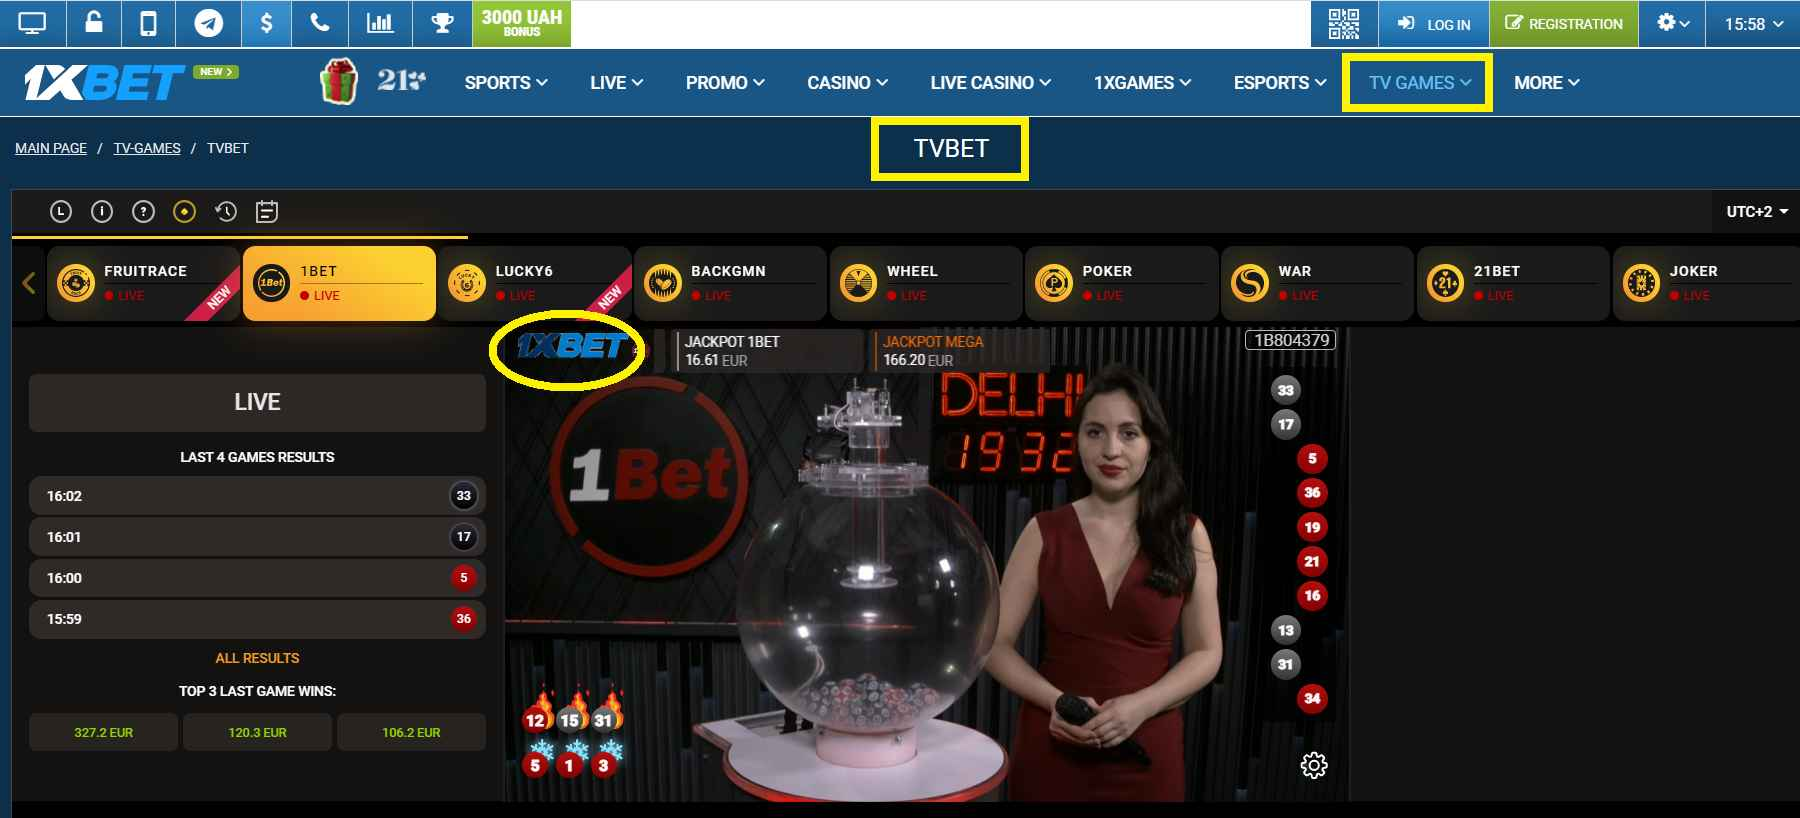 1xBet streaming live